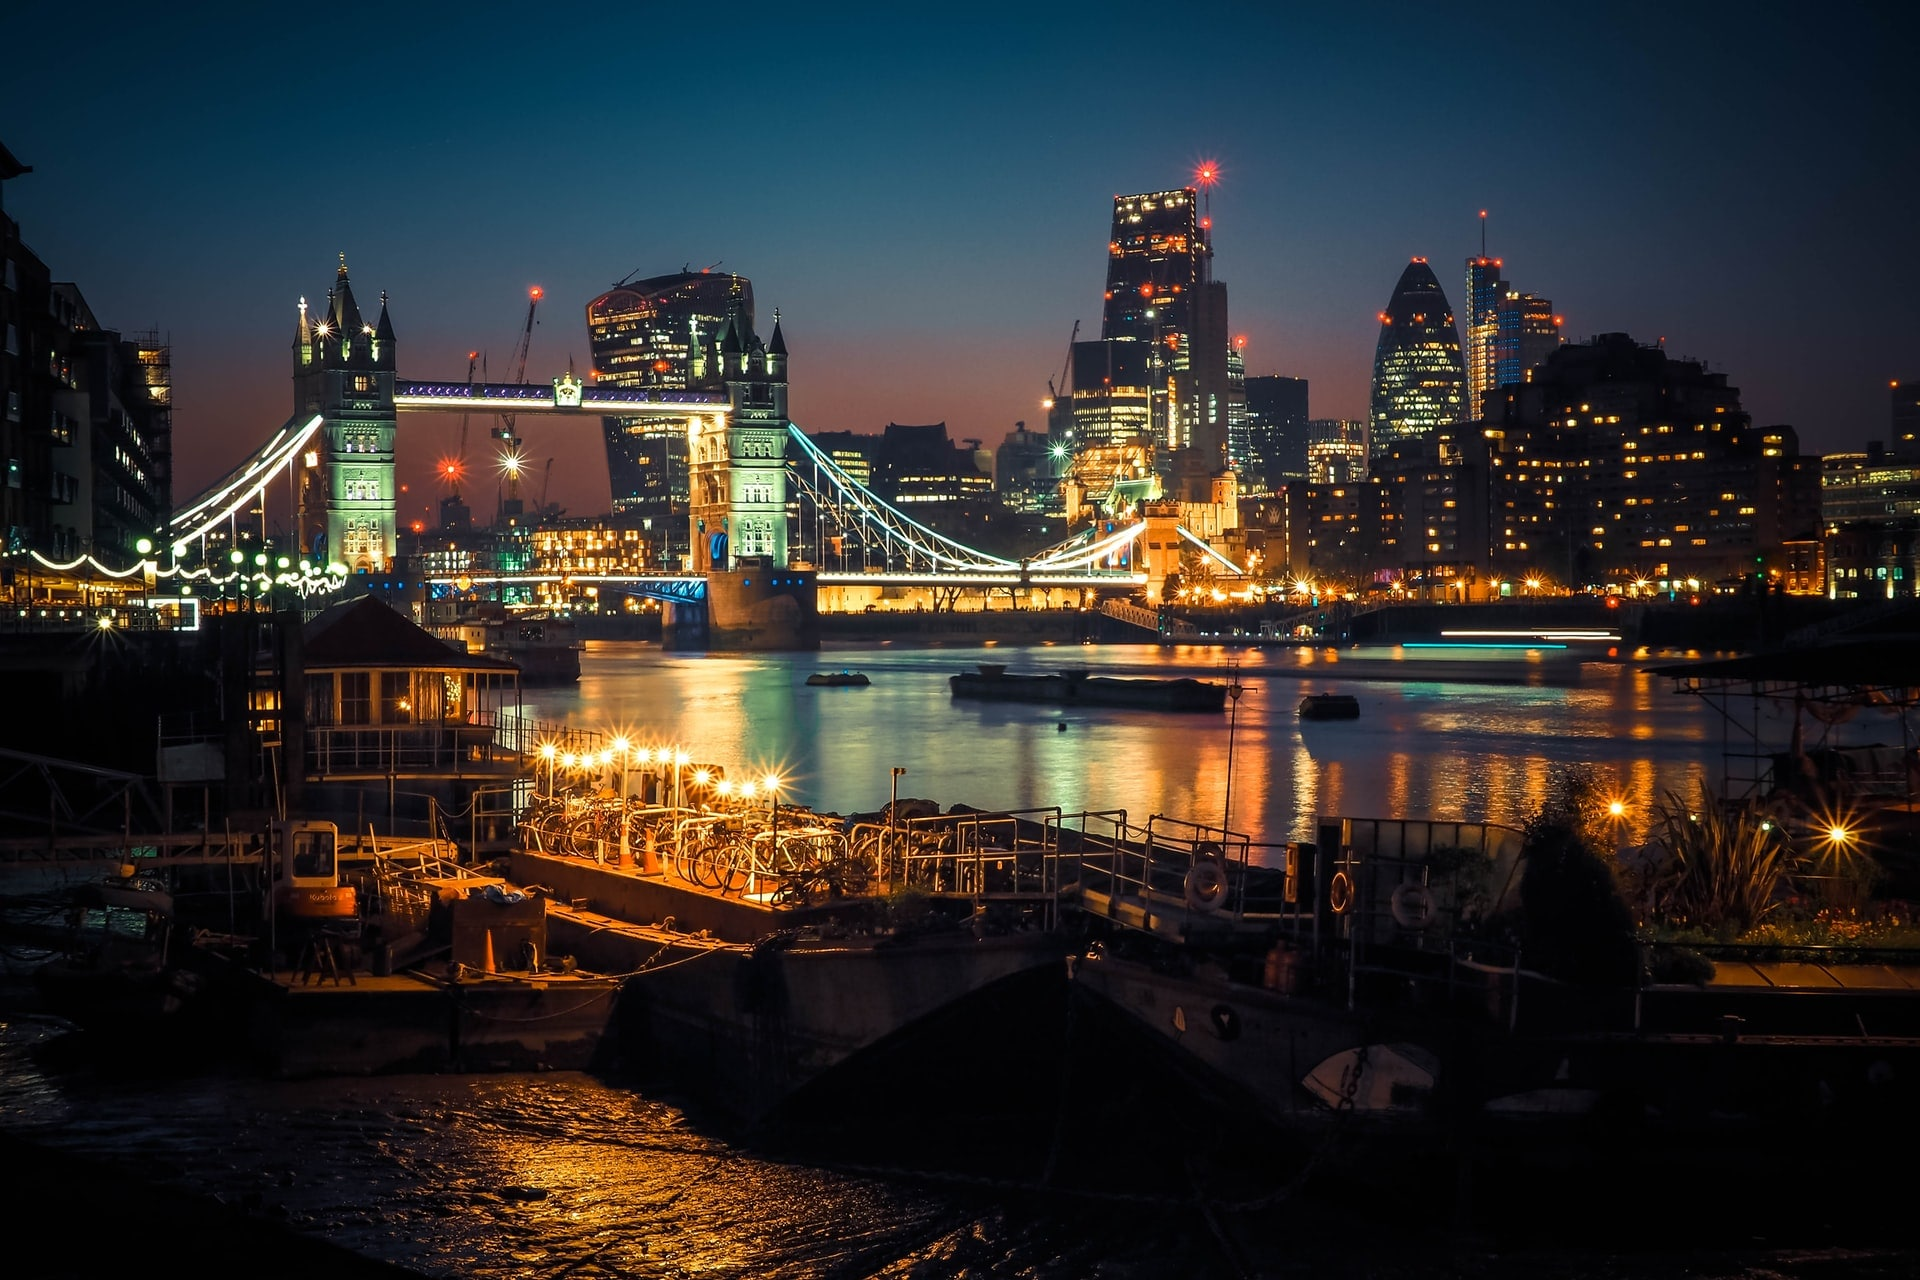 tower-bridge-at-night-lit-up-by-lights-on-the-river-thames